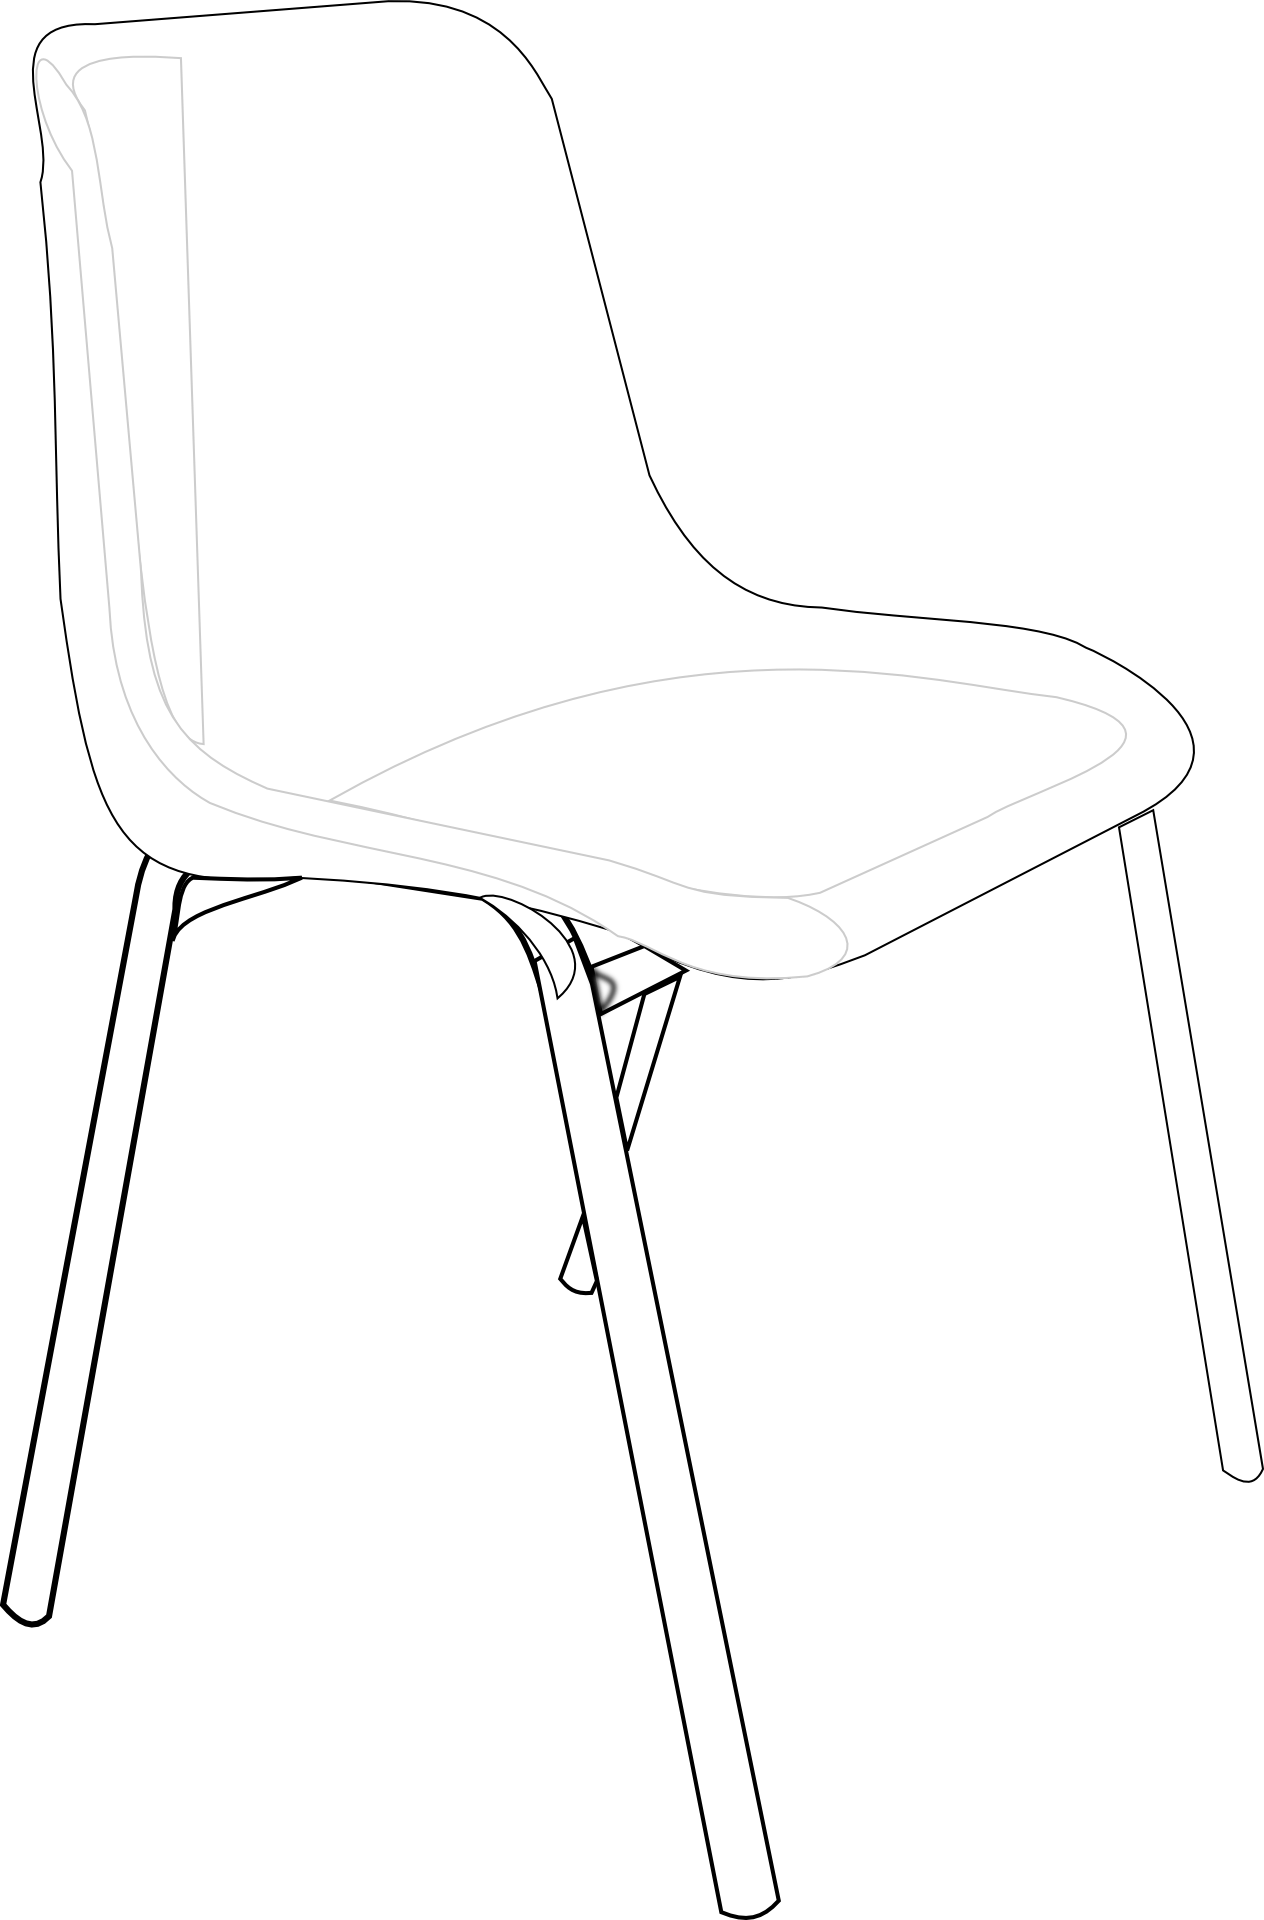 chair outline,furniture free vector